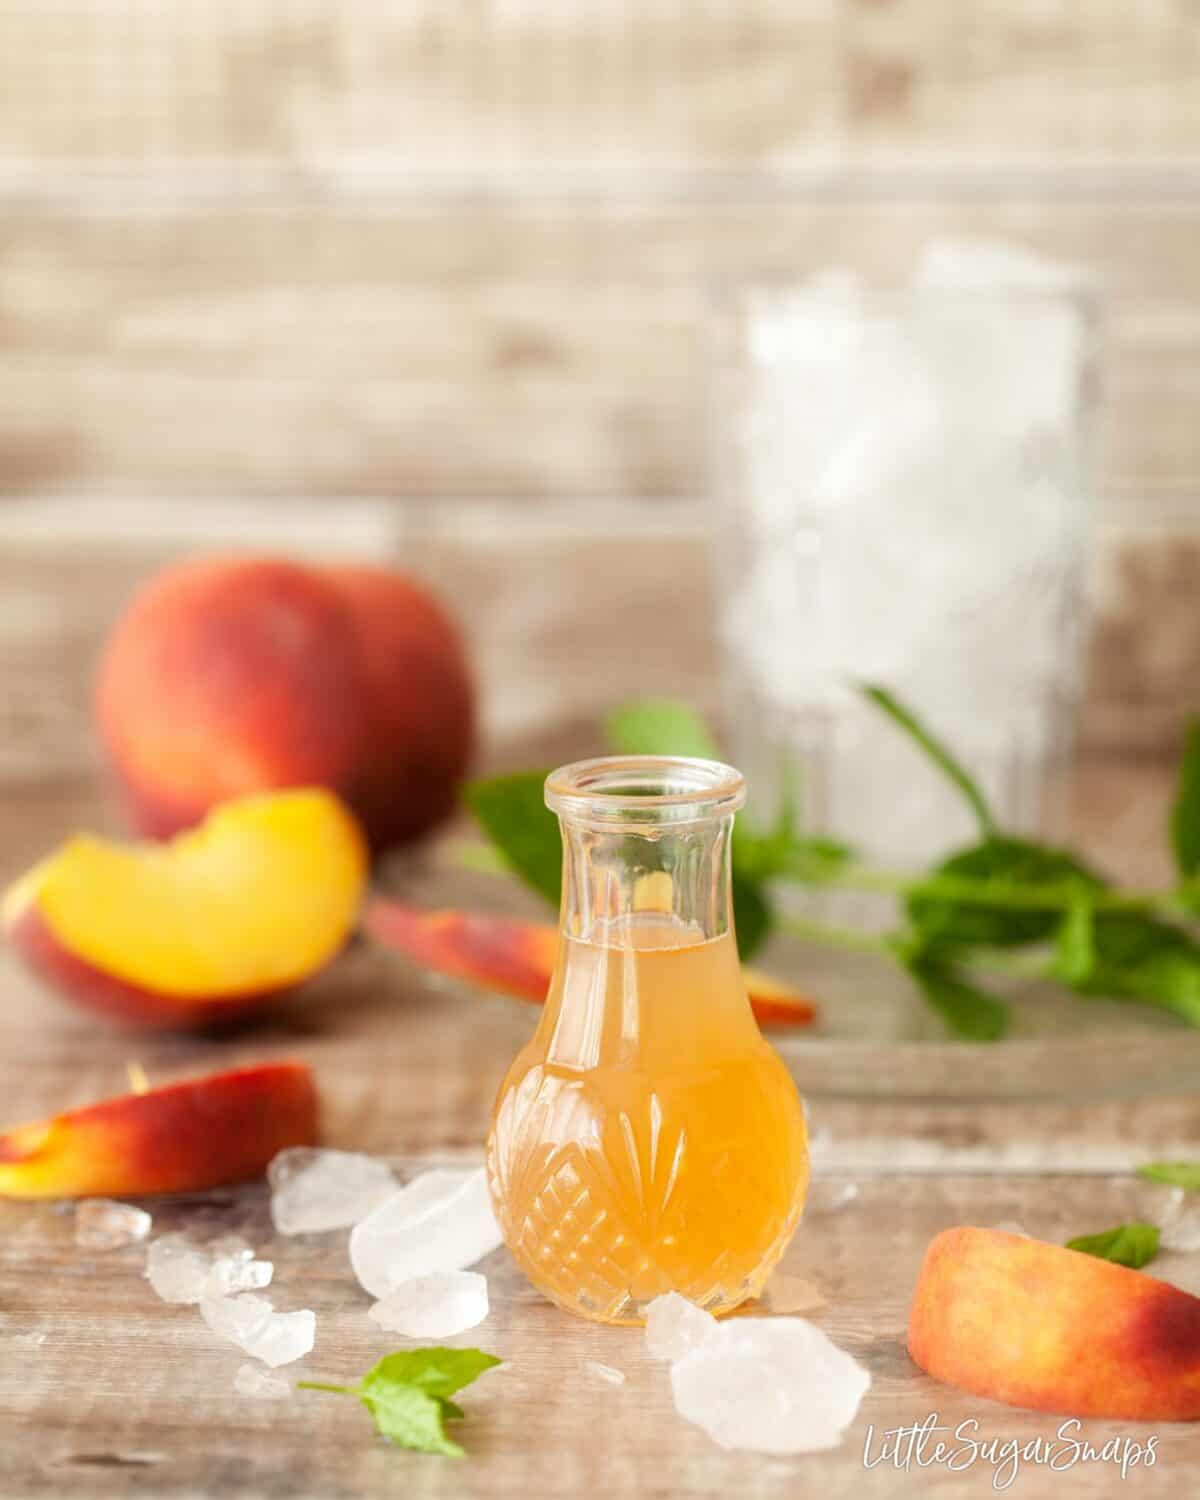 homemade peach syrup in a glass bottle